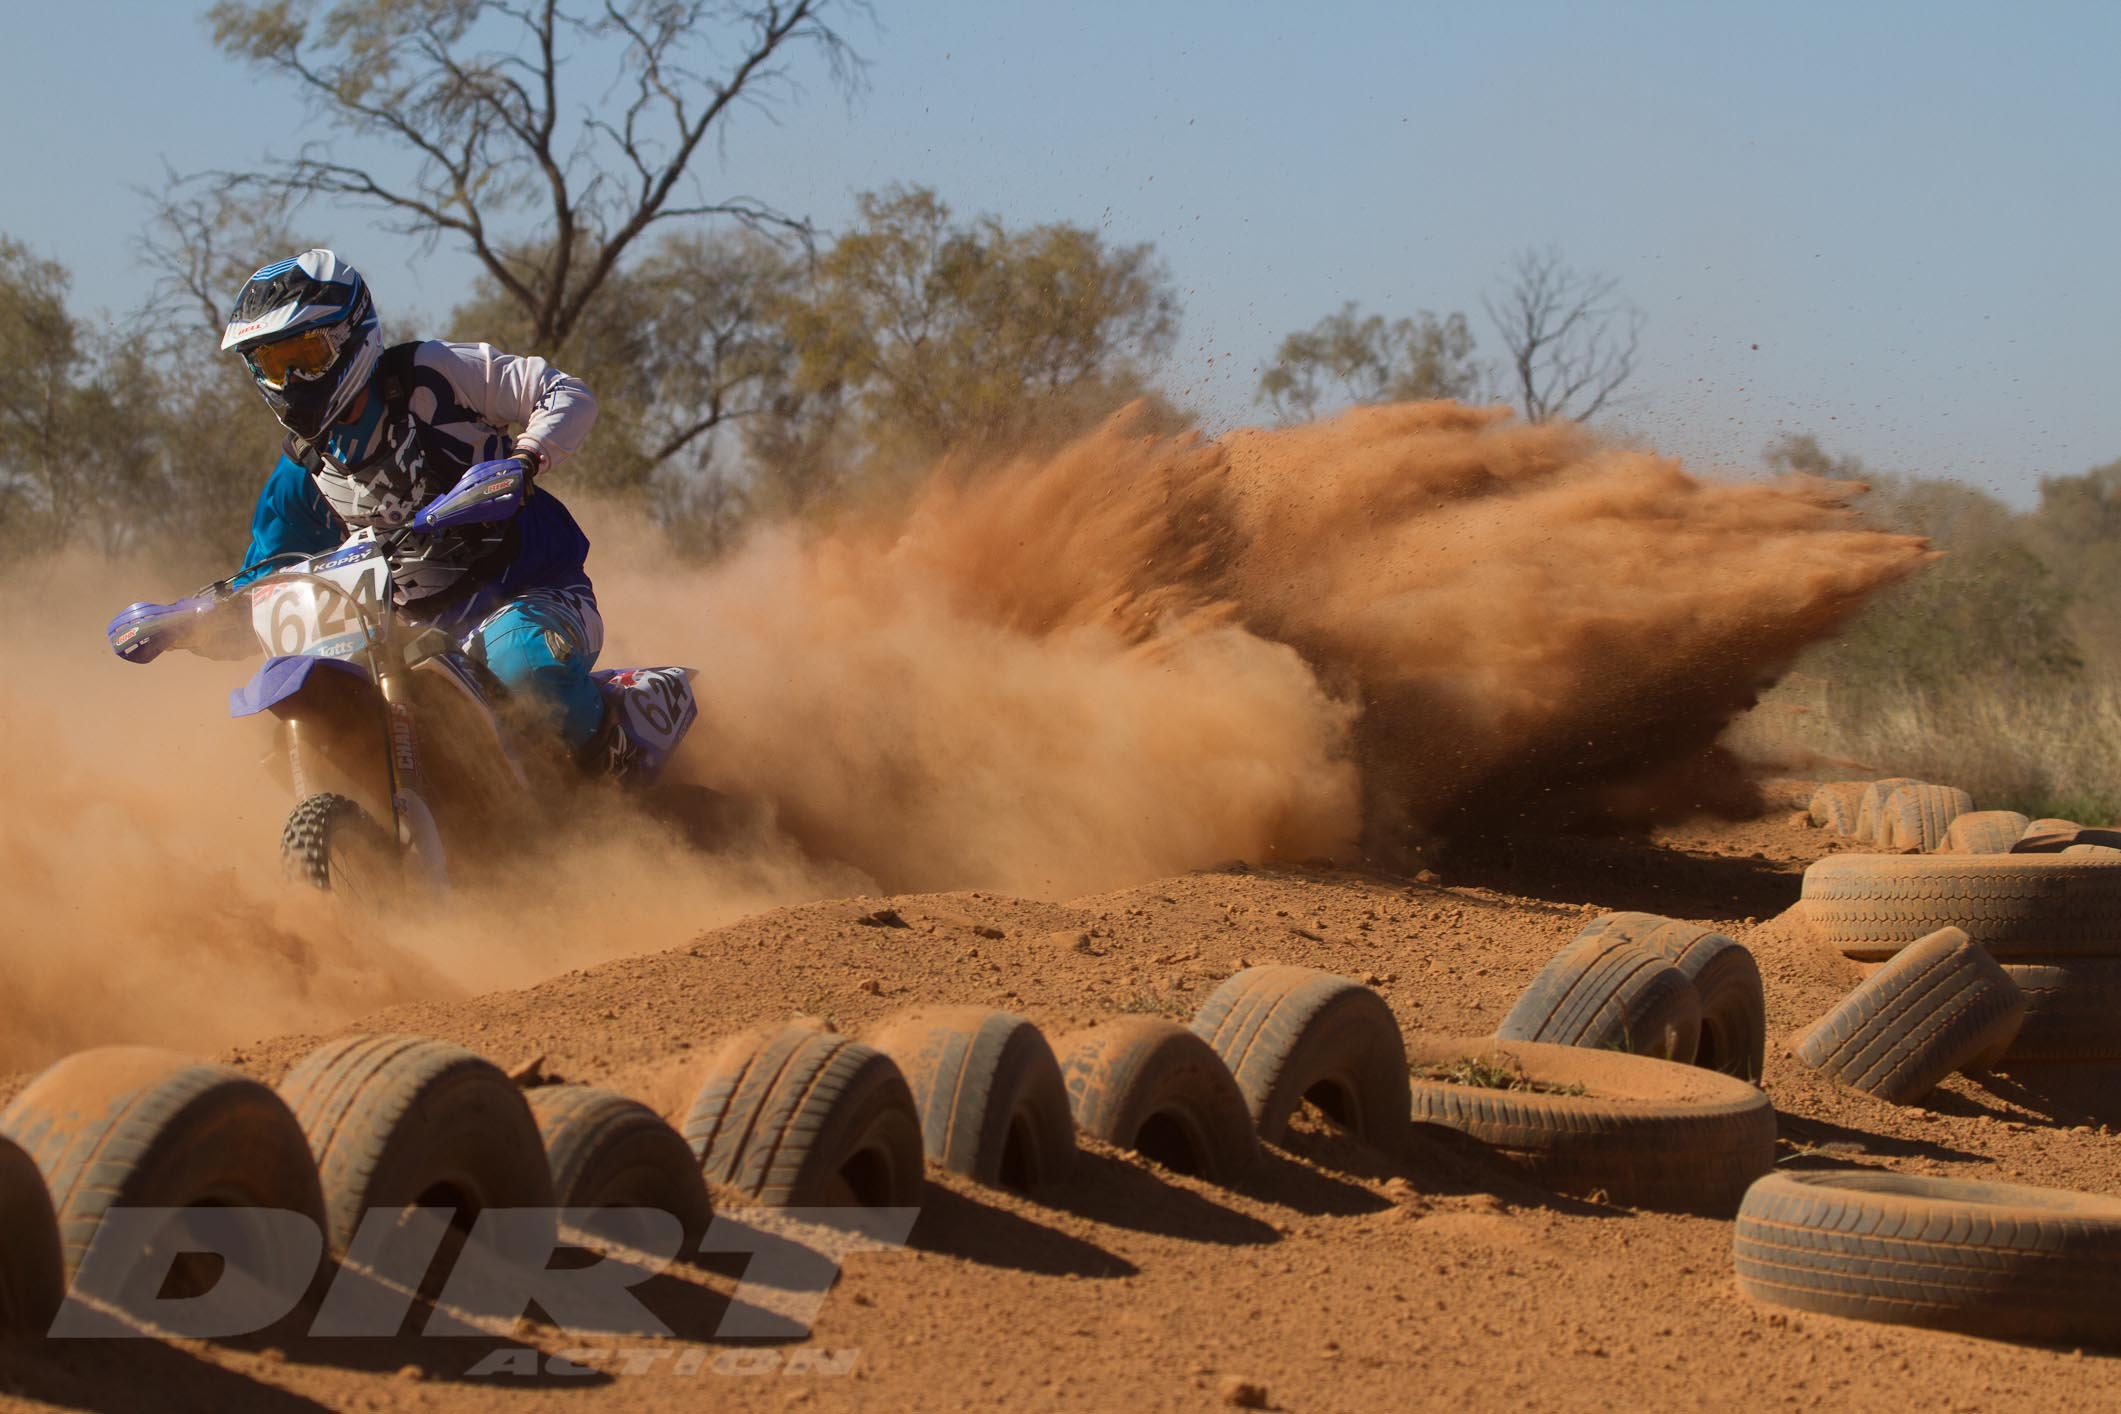 2014 TATTS FINKE DESERT RACE - PROLOGUE GALLERY